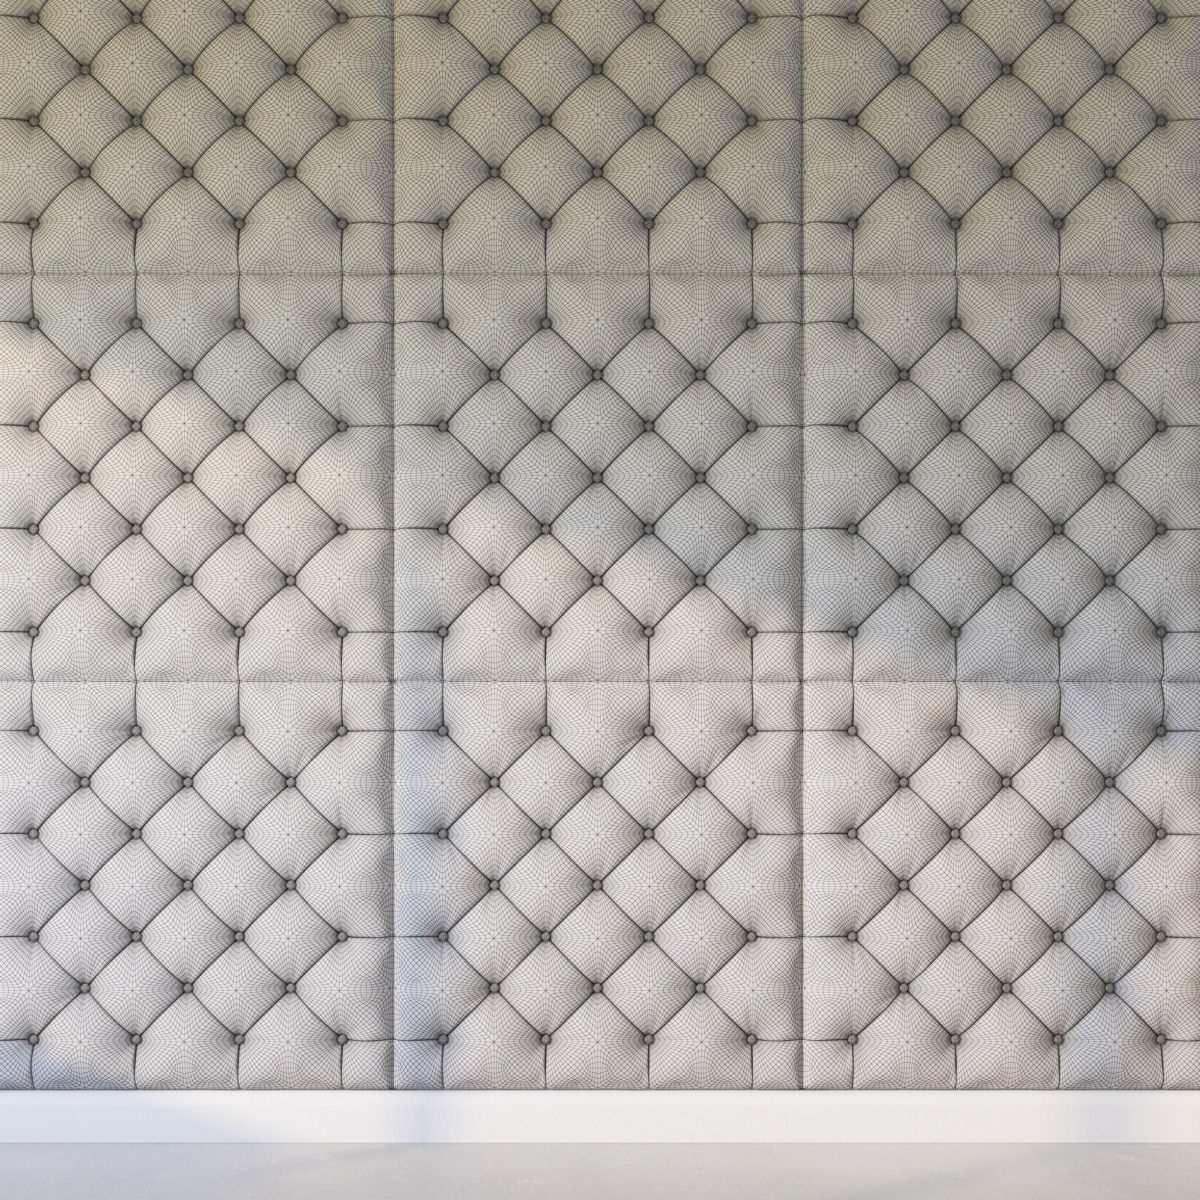 Attrayant ... Decorative Wall Panel Gray 3d Model Max Obj Fbx Mtl 4 ...